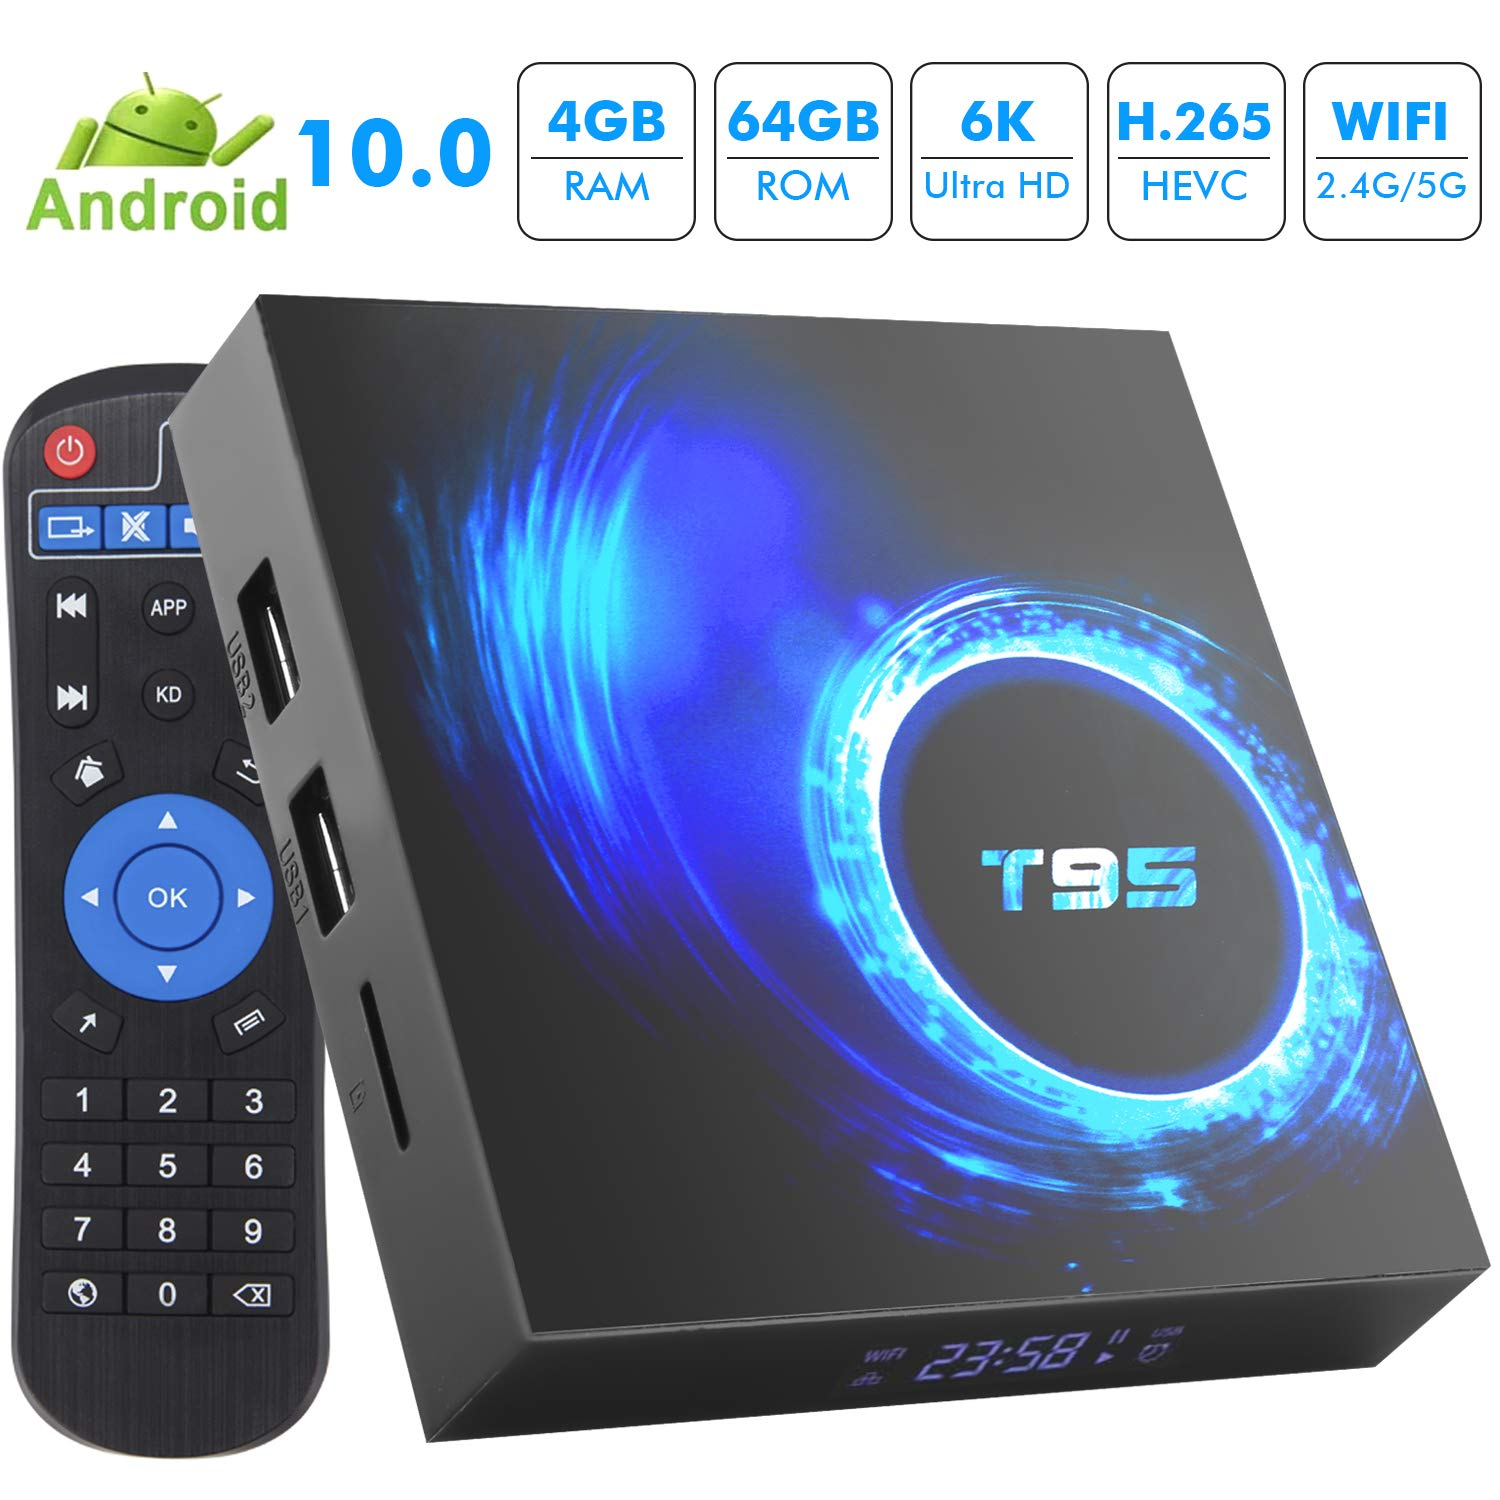 Android TV Box, Android 10.0 TV Box 4GB RAM 64GB ROM Allwinner H616 Quad-Core 64bit,Smart TV Box Soporte 2.4G/5GHz WiFi 6K / 4K Ultra HD / 3D / H.265 Android Box: Amazon.es: